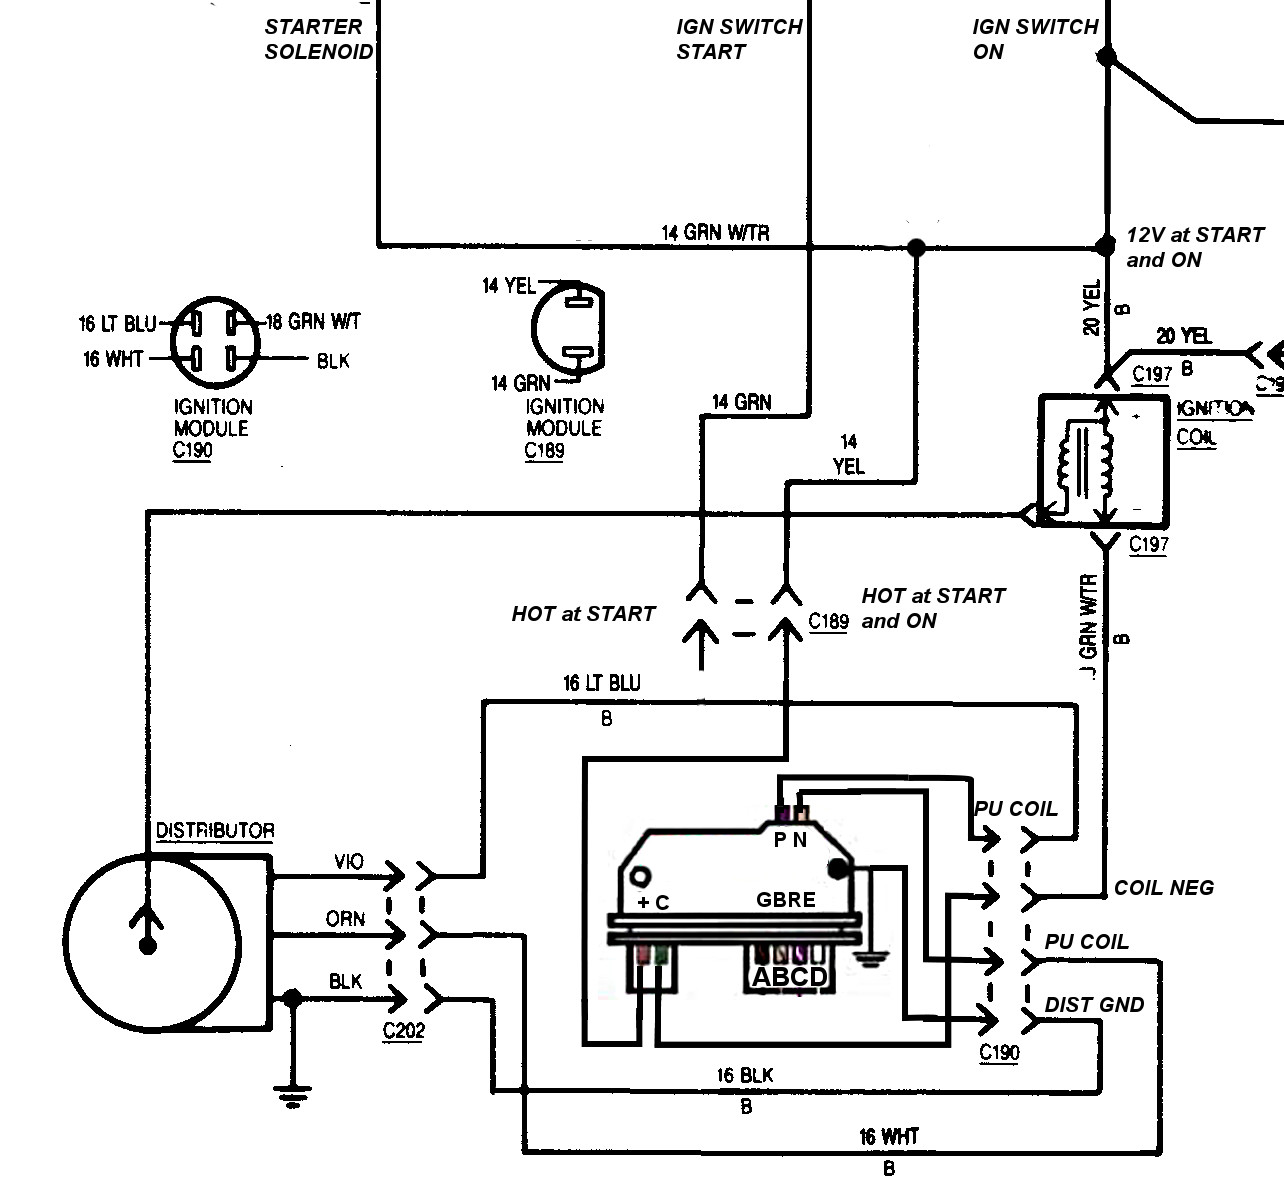 Ford Wiring Diagram Distributor Haltech E11 Duraspark Ignition